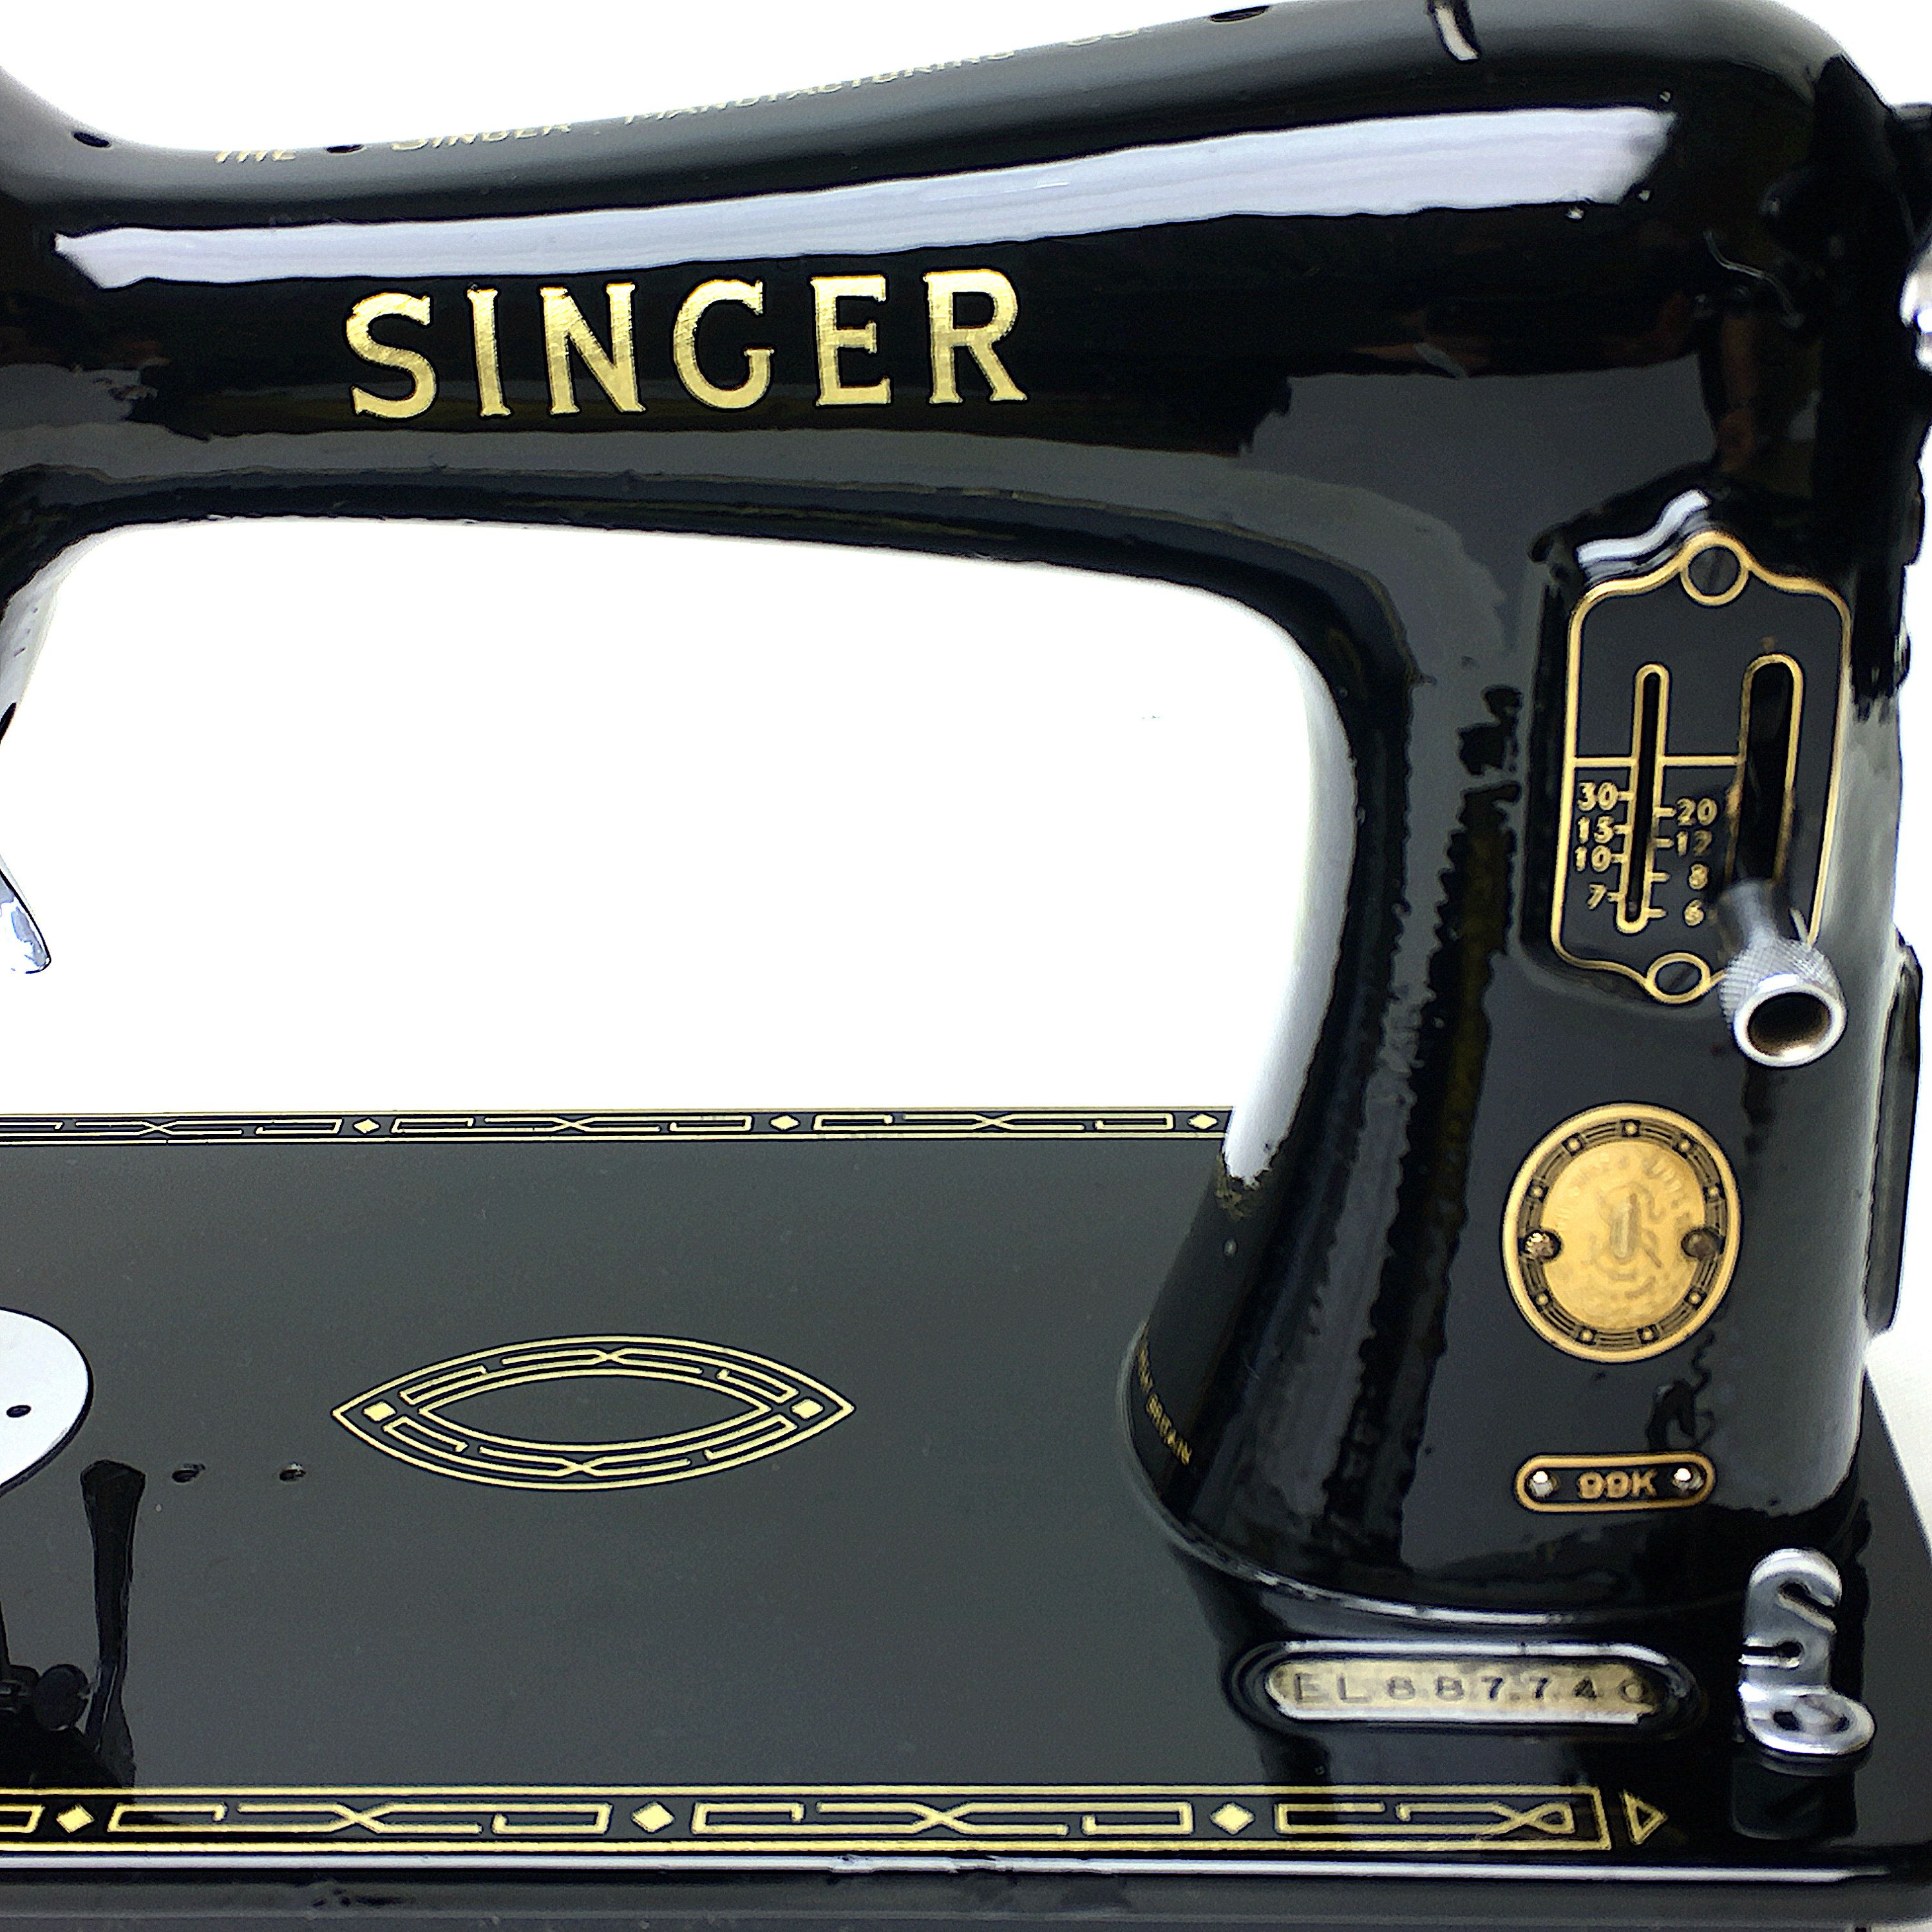 On right of image Bobbin Winder Rubber for the Singer 99k Sewing Machine